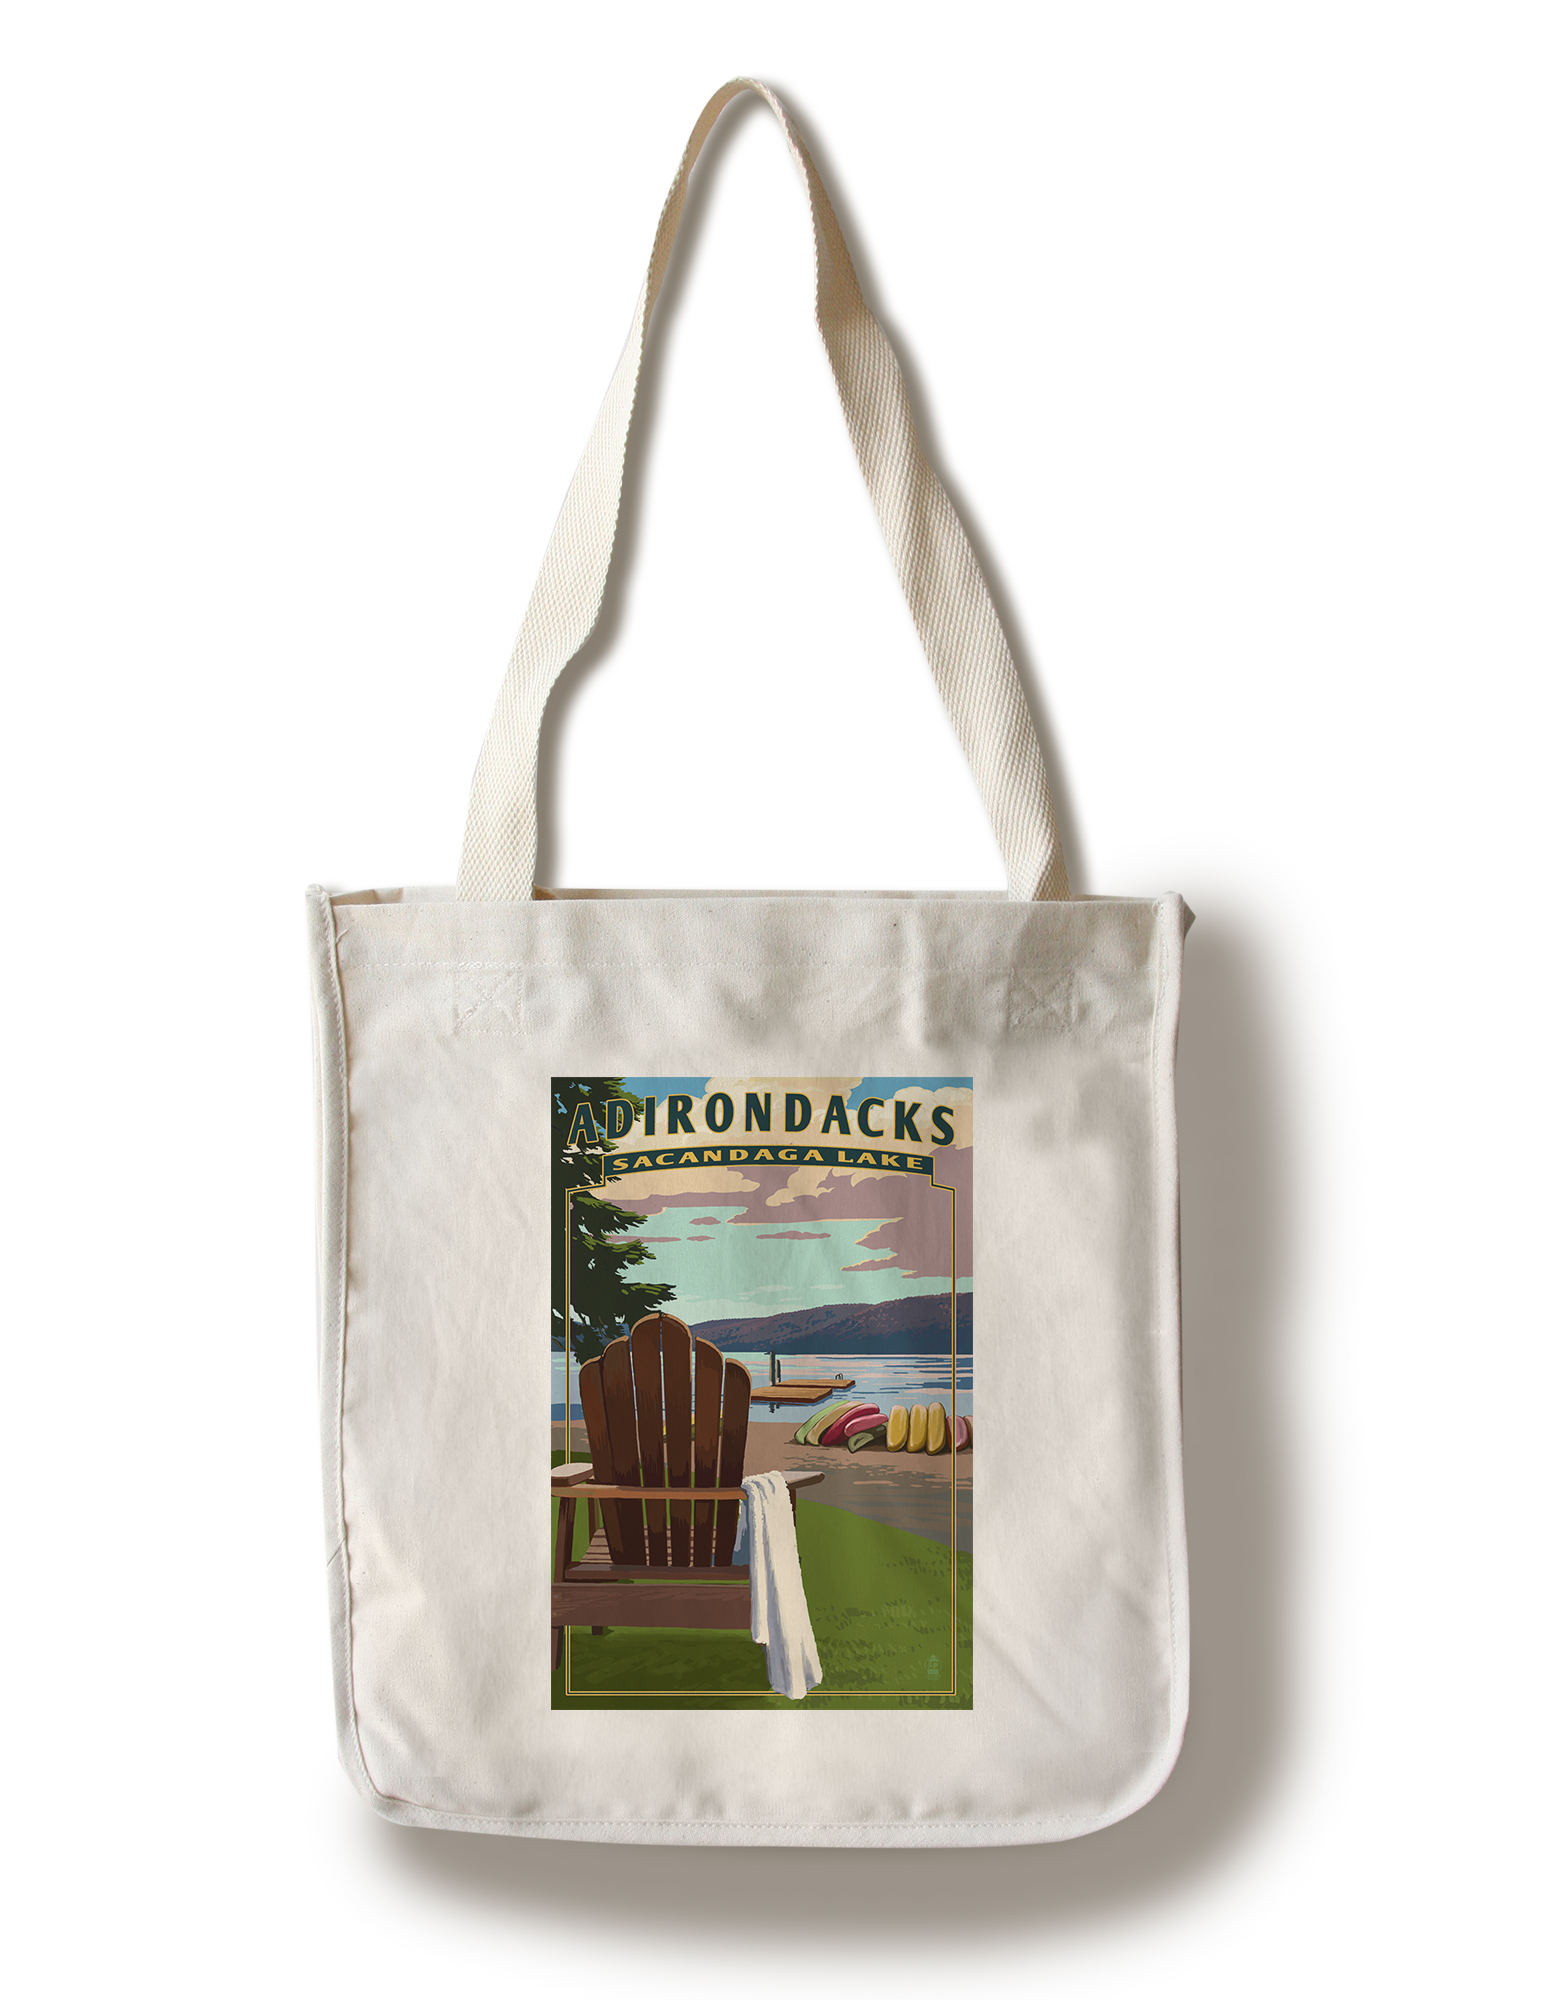 Adirondack Mountains, New York Sacandaga Lake Adirondack Chair Lantern Press Artwork (100% Cotton Tote Bag Reusable) by Lantern Press